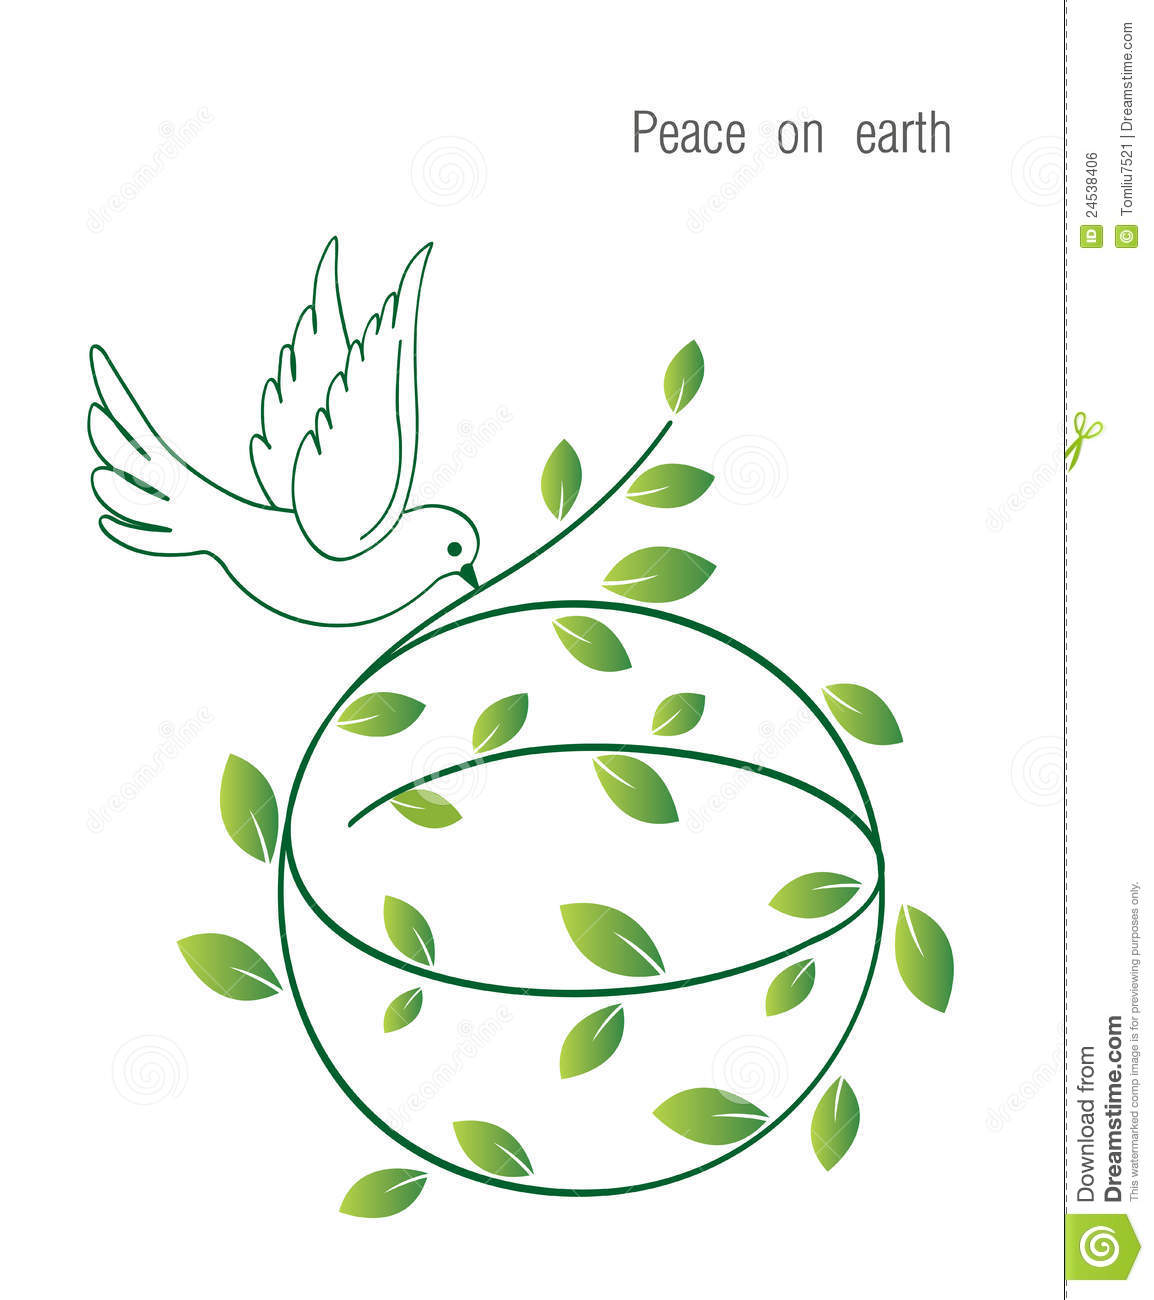 free christmas peace on earth clipart - photo #16